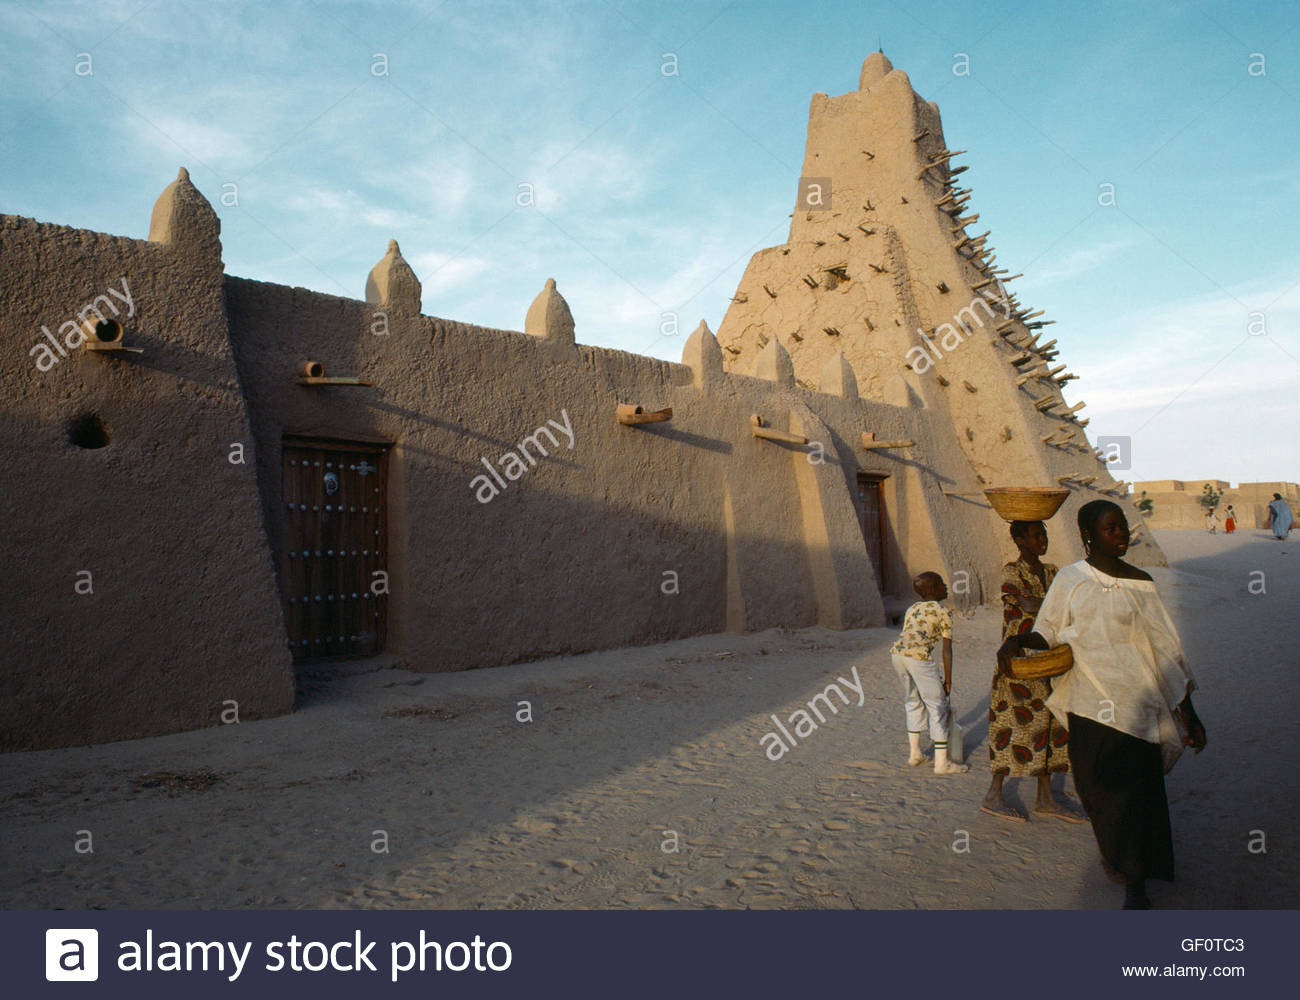 sahara and timbuktu The first book for general readers about the storied past of one of the world's most fabled cities timbuktu — the name still evokes an exotic, faraway place, even though the city's glory days are long gone unspooling its history and legends, resolving myth with reality, marq de villiers and.